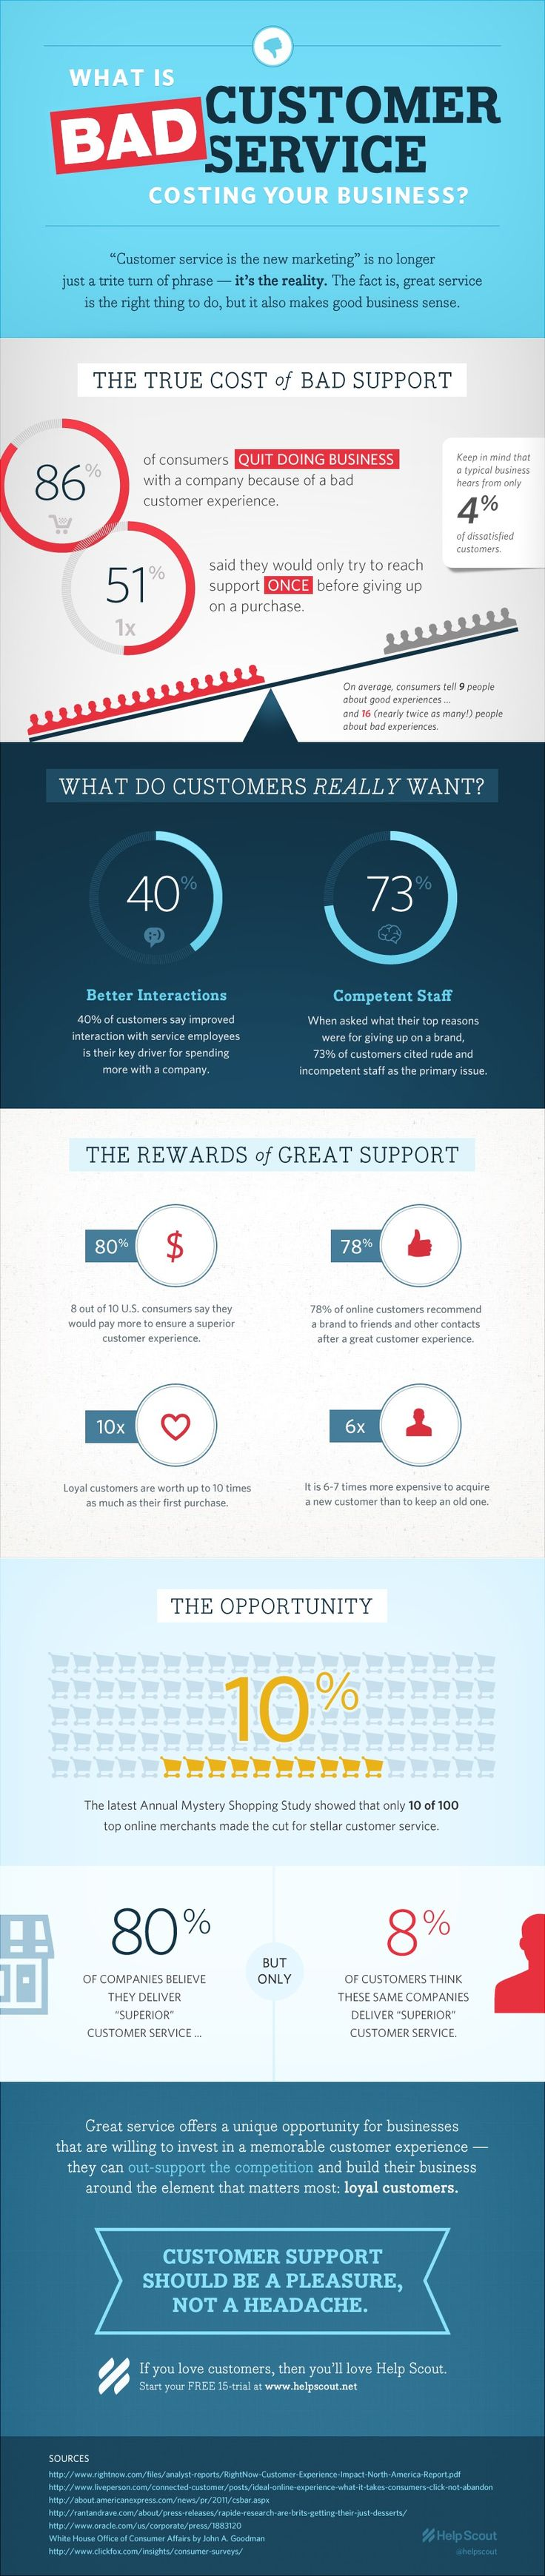 Bad Customer Service Infographic - Love a good success story? Learn how I went from zero to 1 million in sales in 5 months with an e-commerce store.